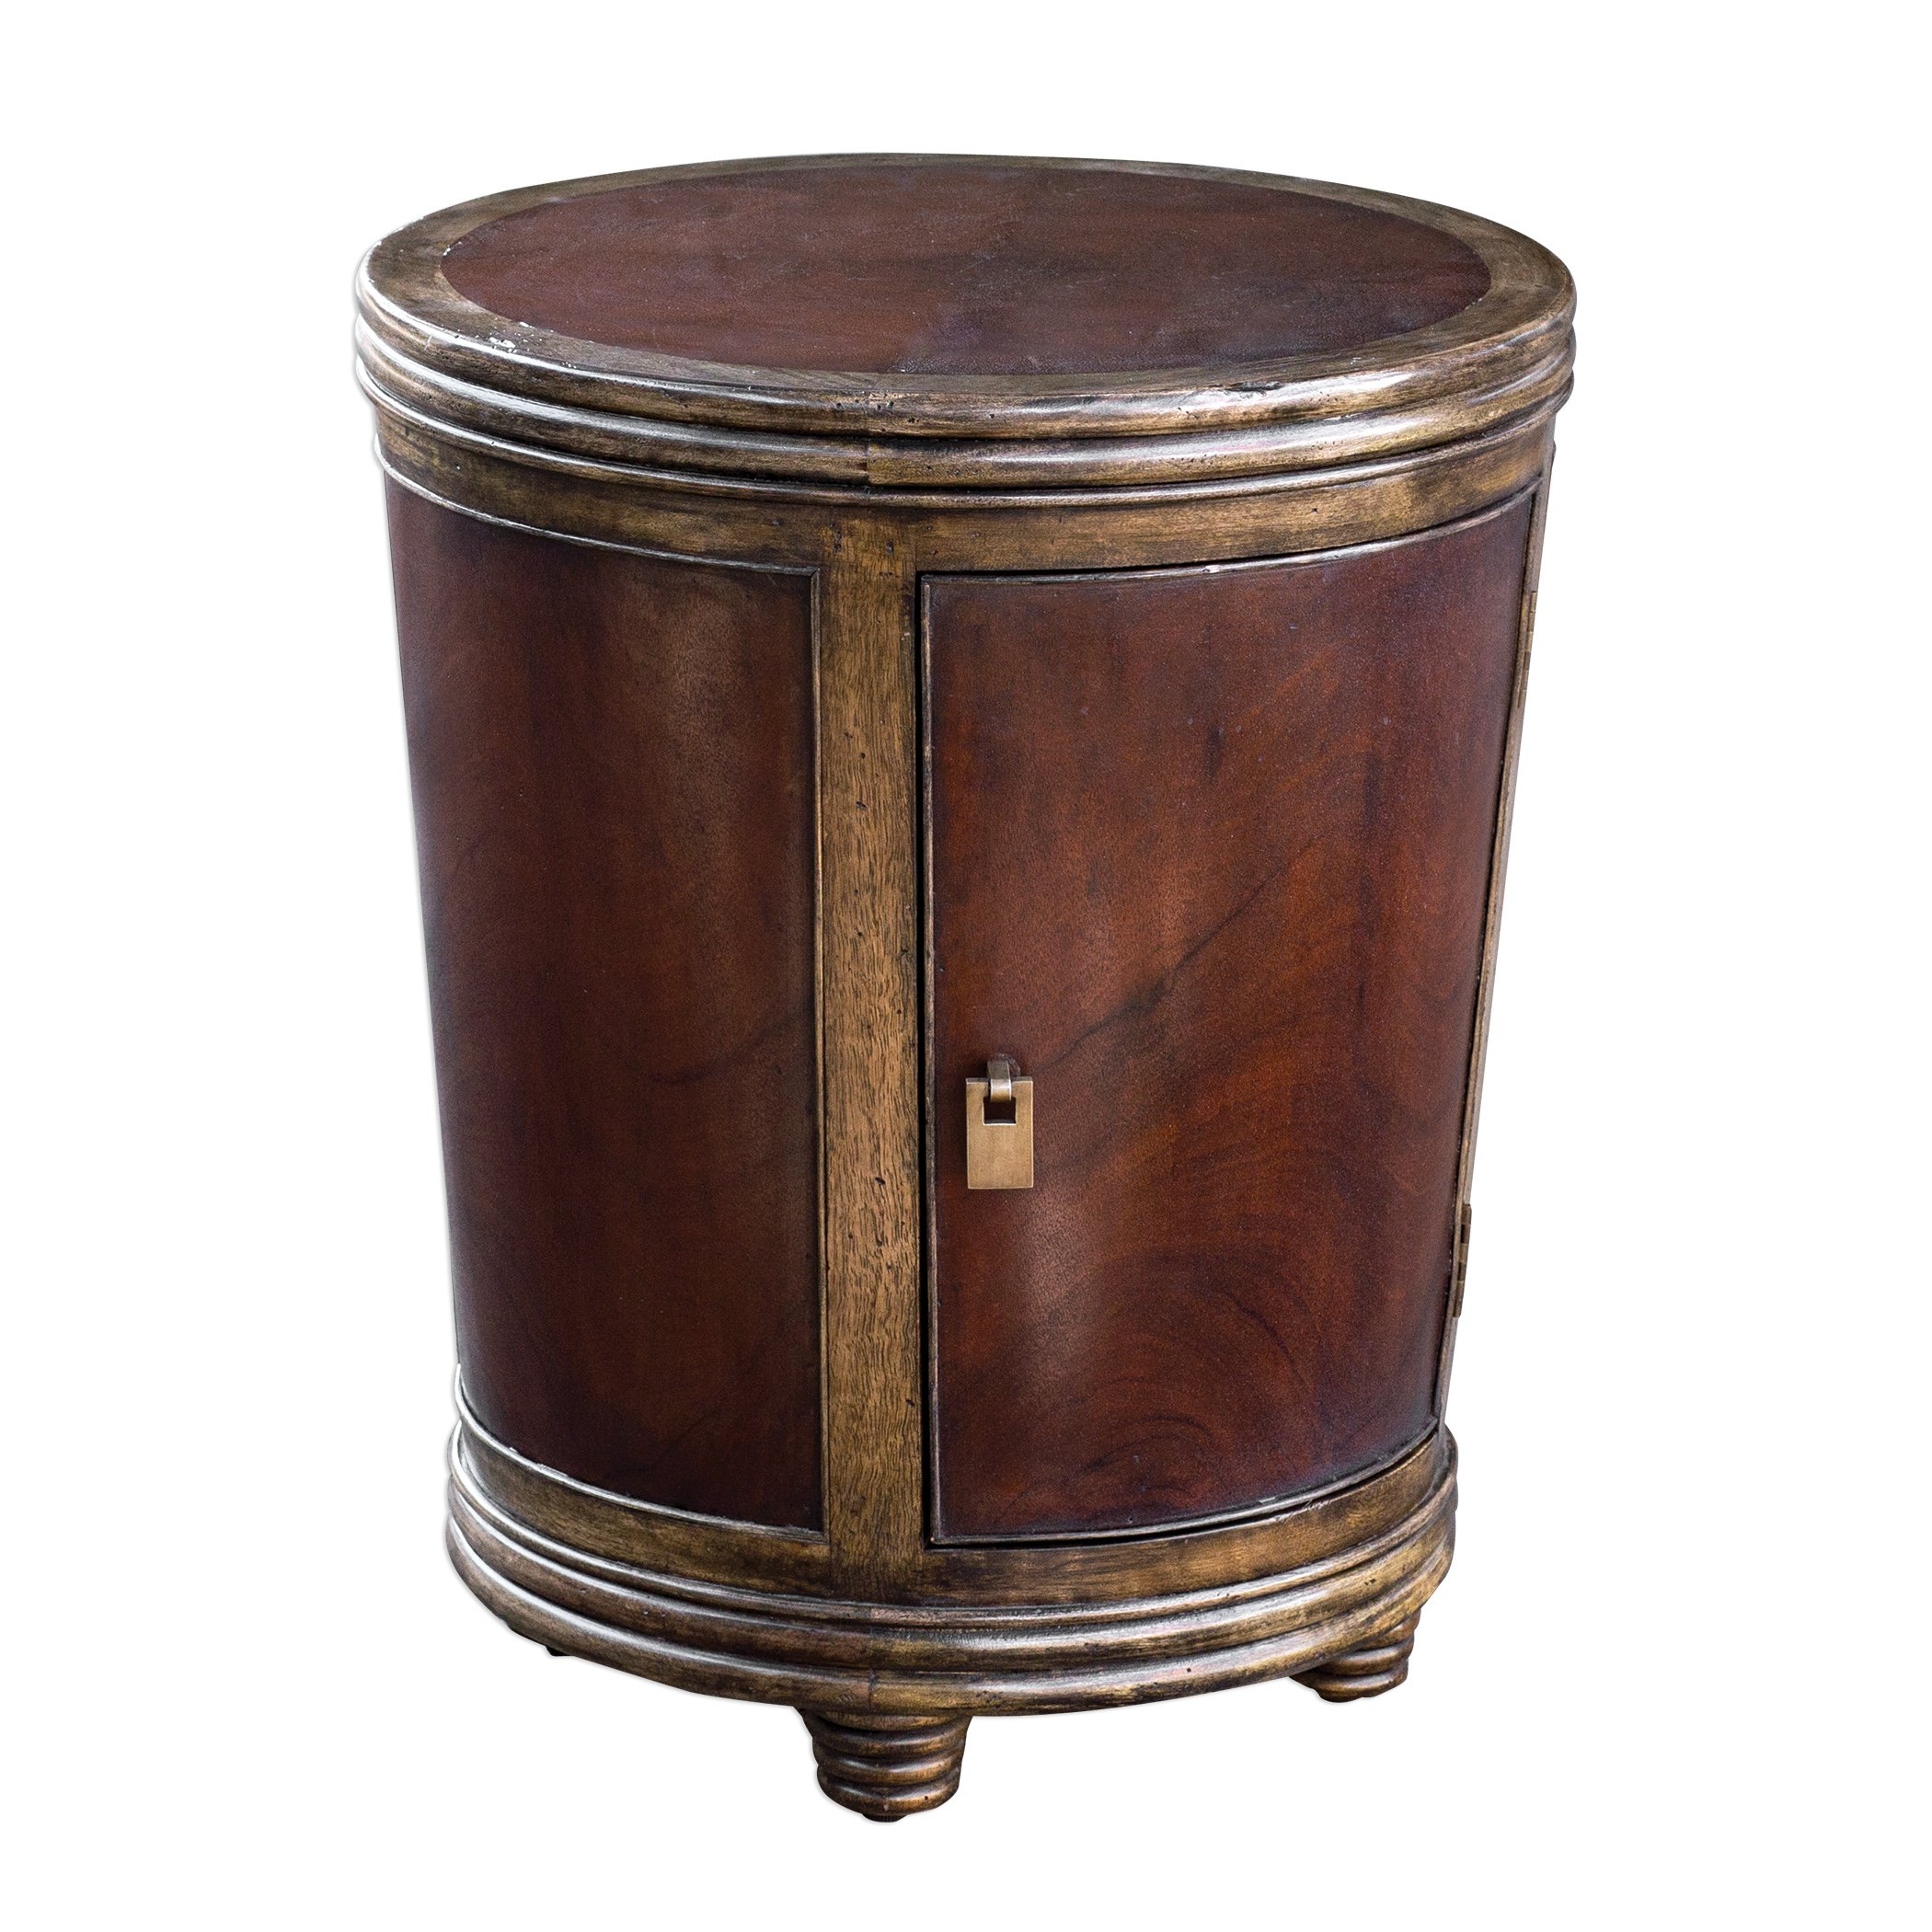 uttermost muraco matthew williams mango wood accent table pub style height party bucket pretty round tablecloths oak floor threshold marble box coffee cream bedside lamps windham